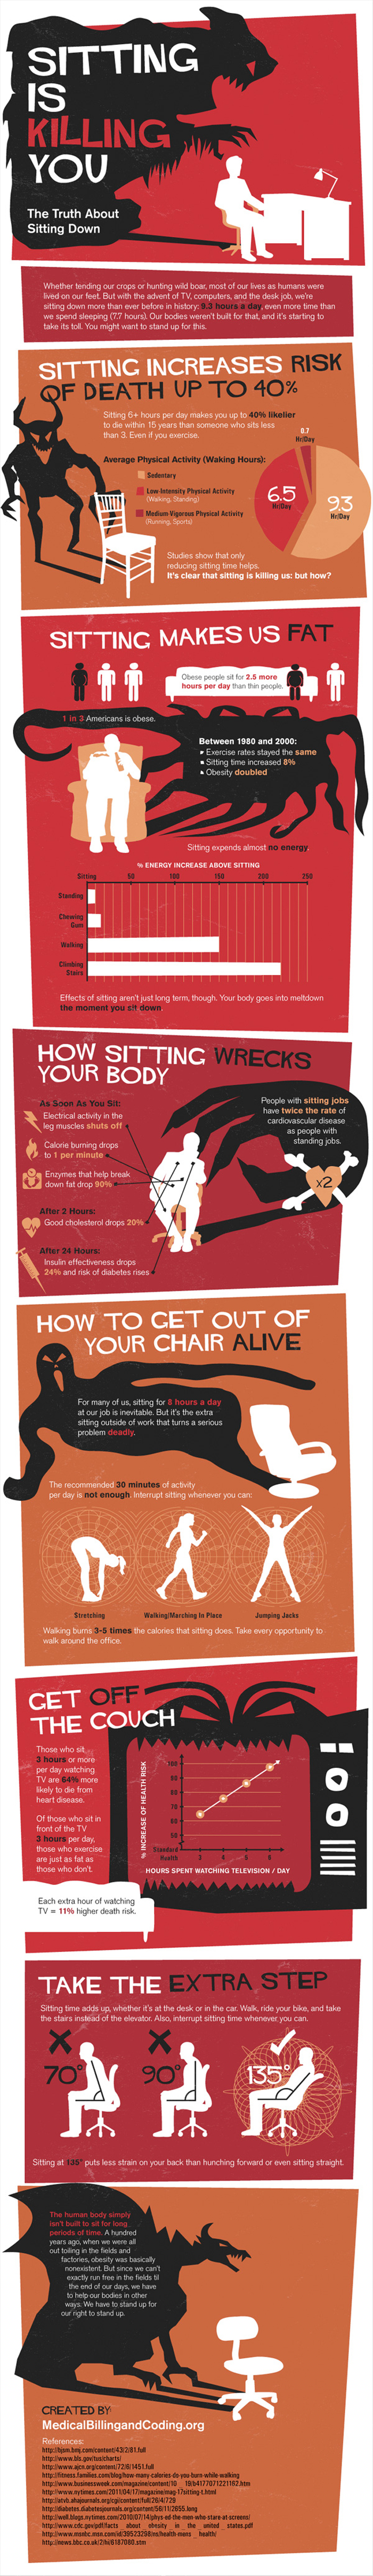 Health Risks of Sitting Infographic